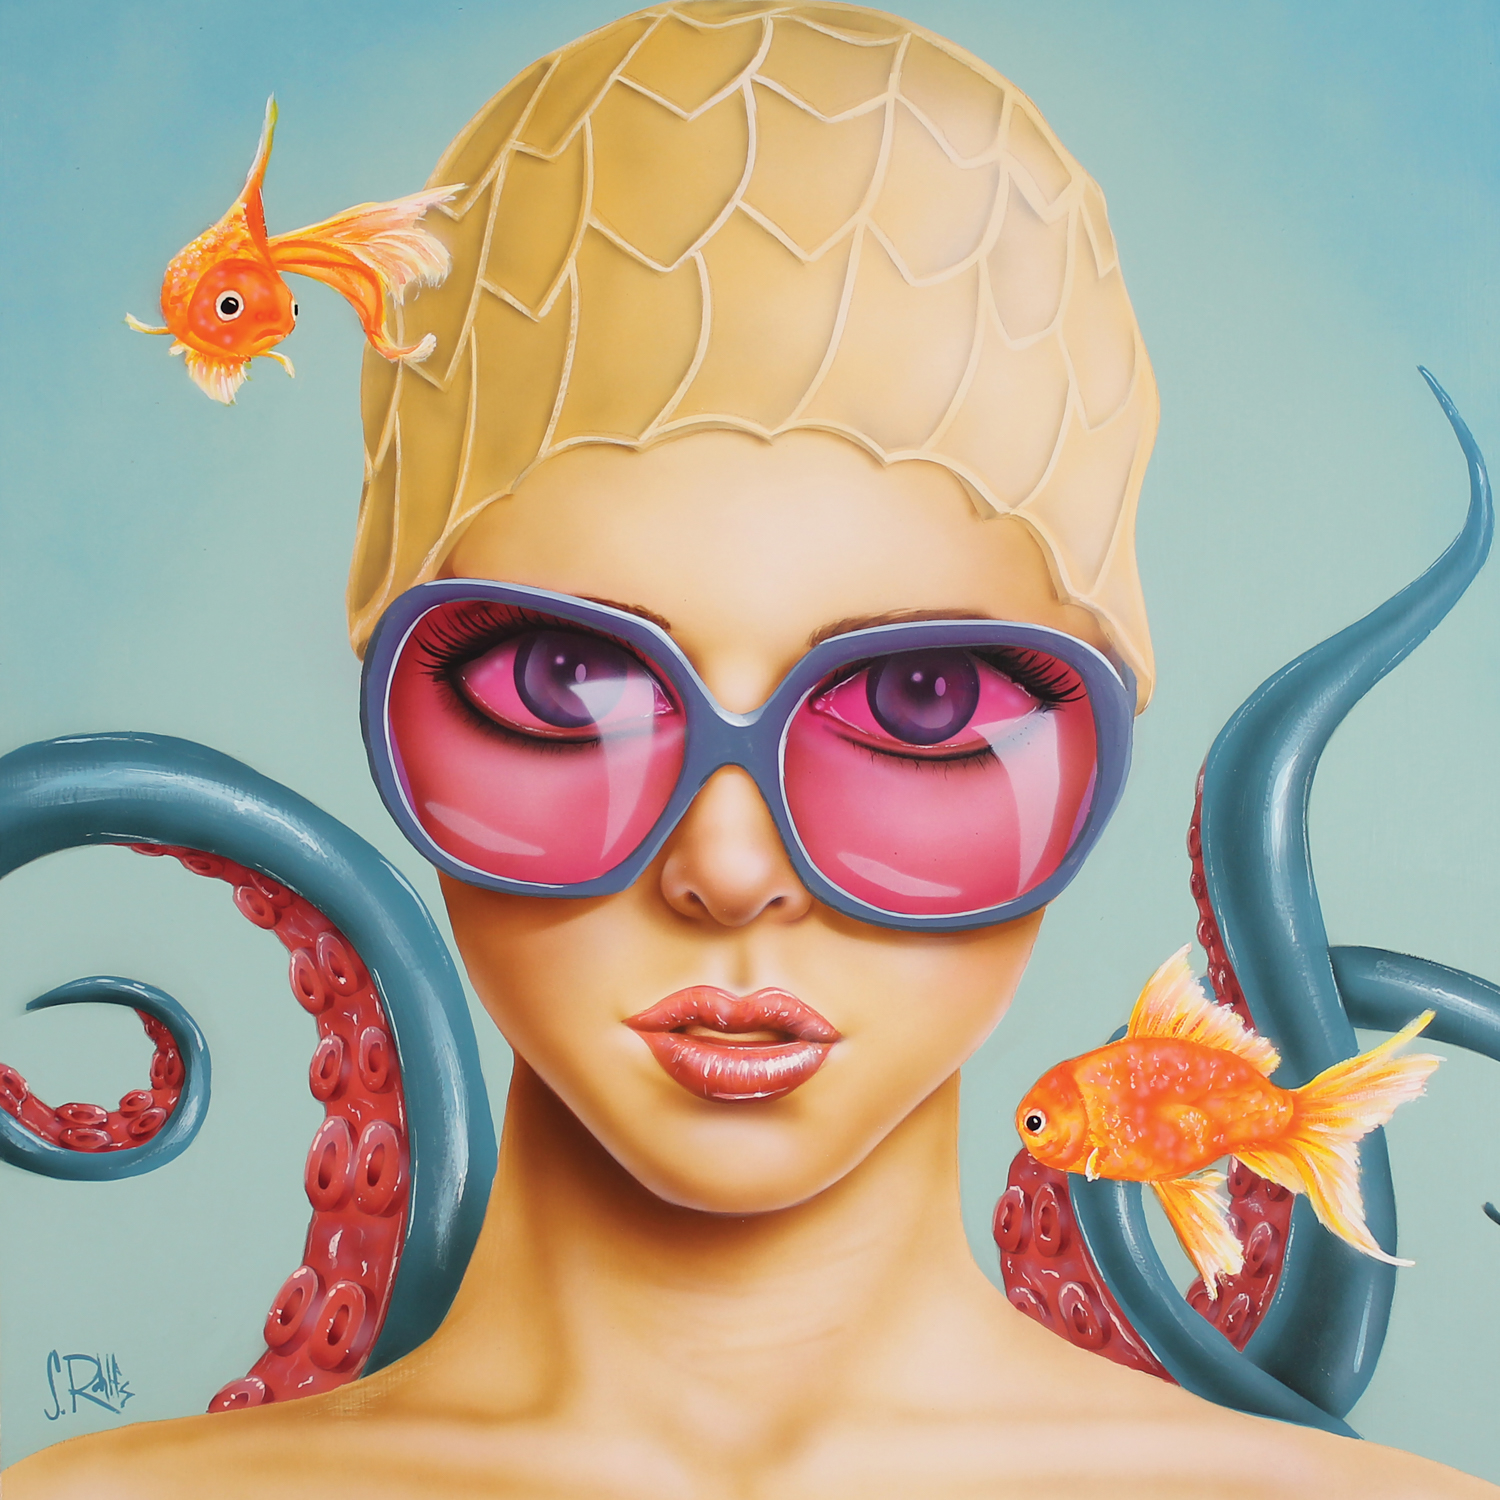 woman in swim cap wearing large sunglasses with tentacles in background, 2 goldfish nearby